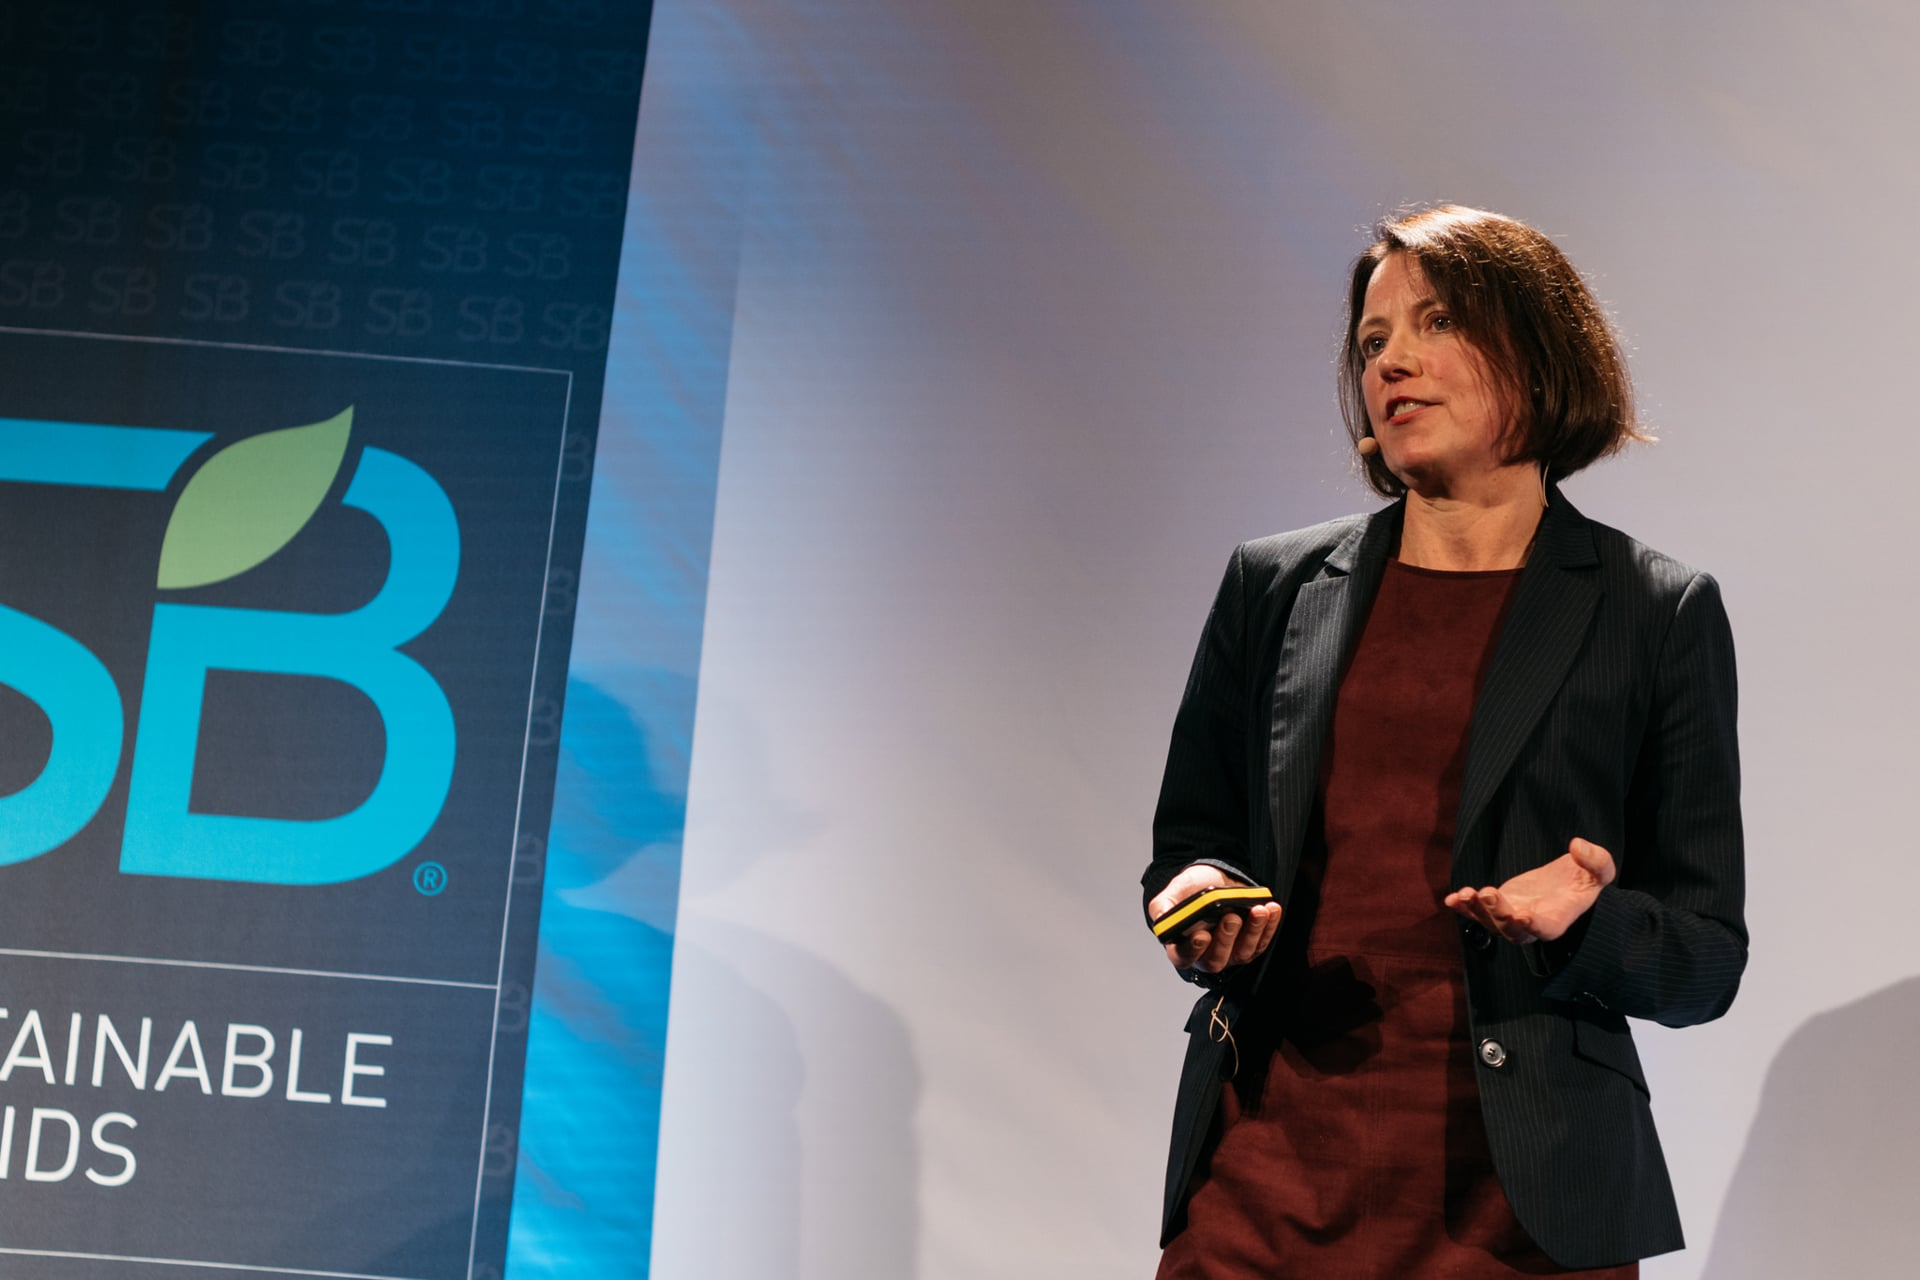 SB'16 Copenhagen Keynote / A Market-Leading Case Study in Purpose-driven Cross-Industry Collaboration